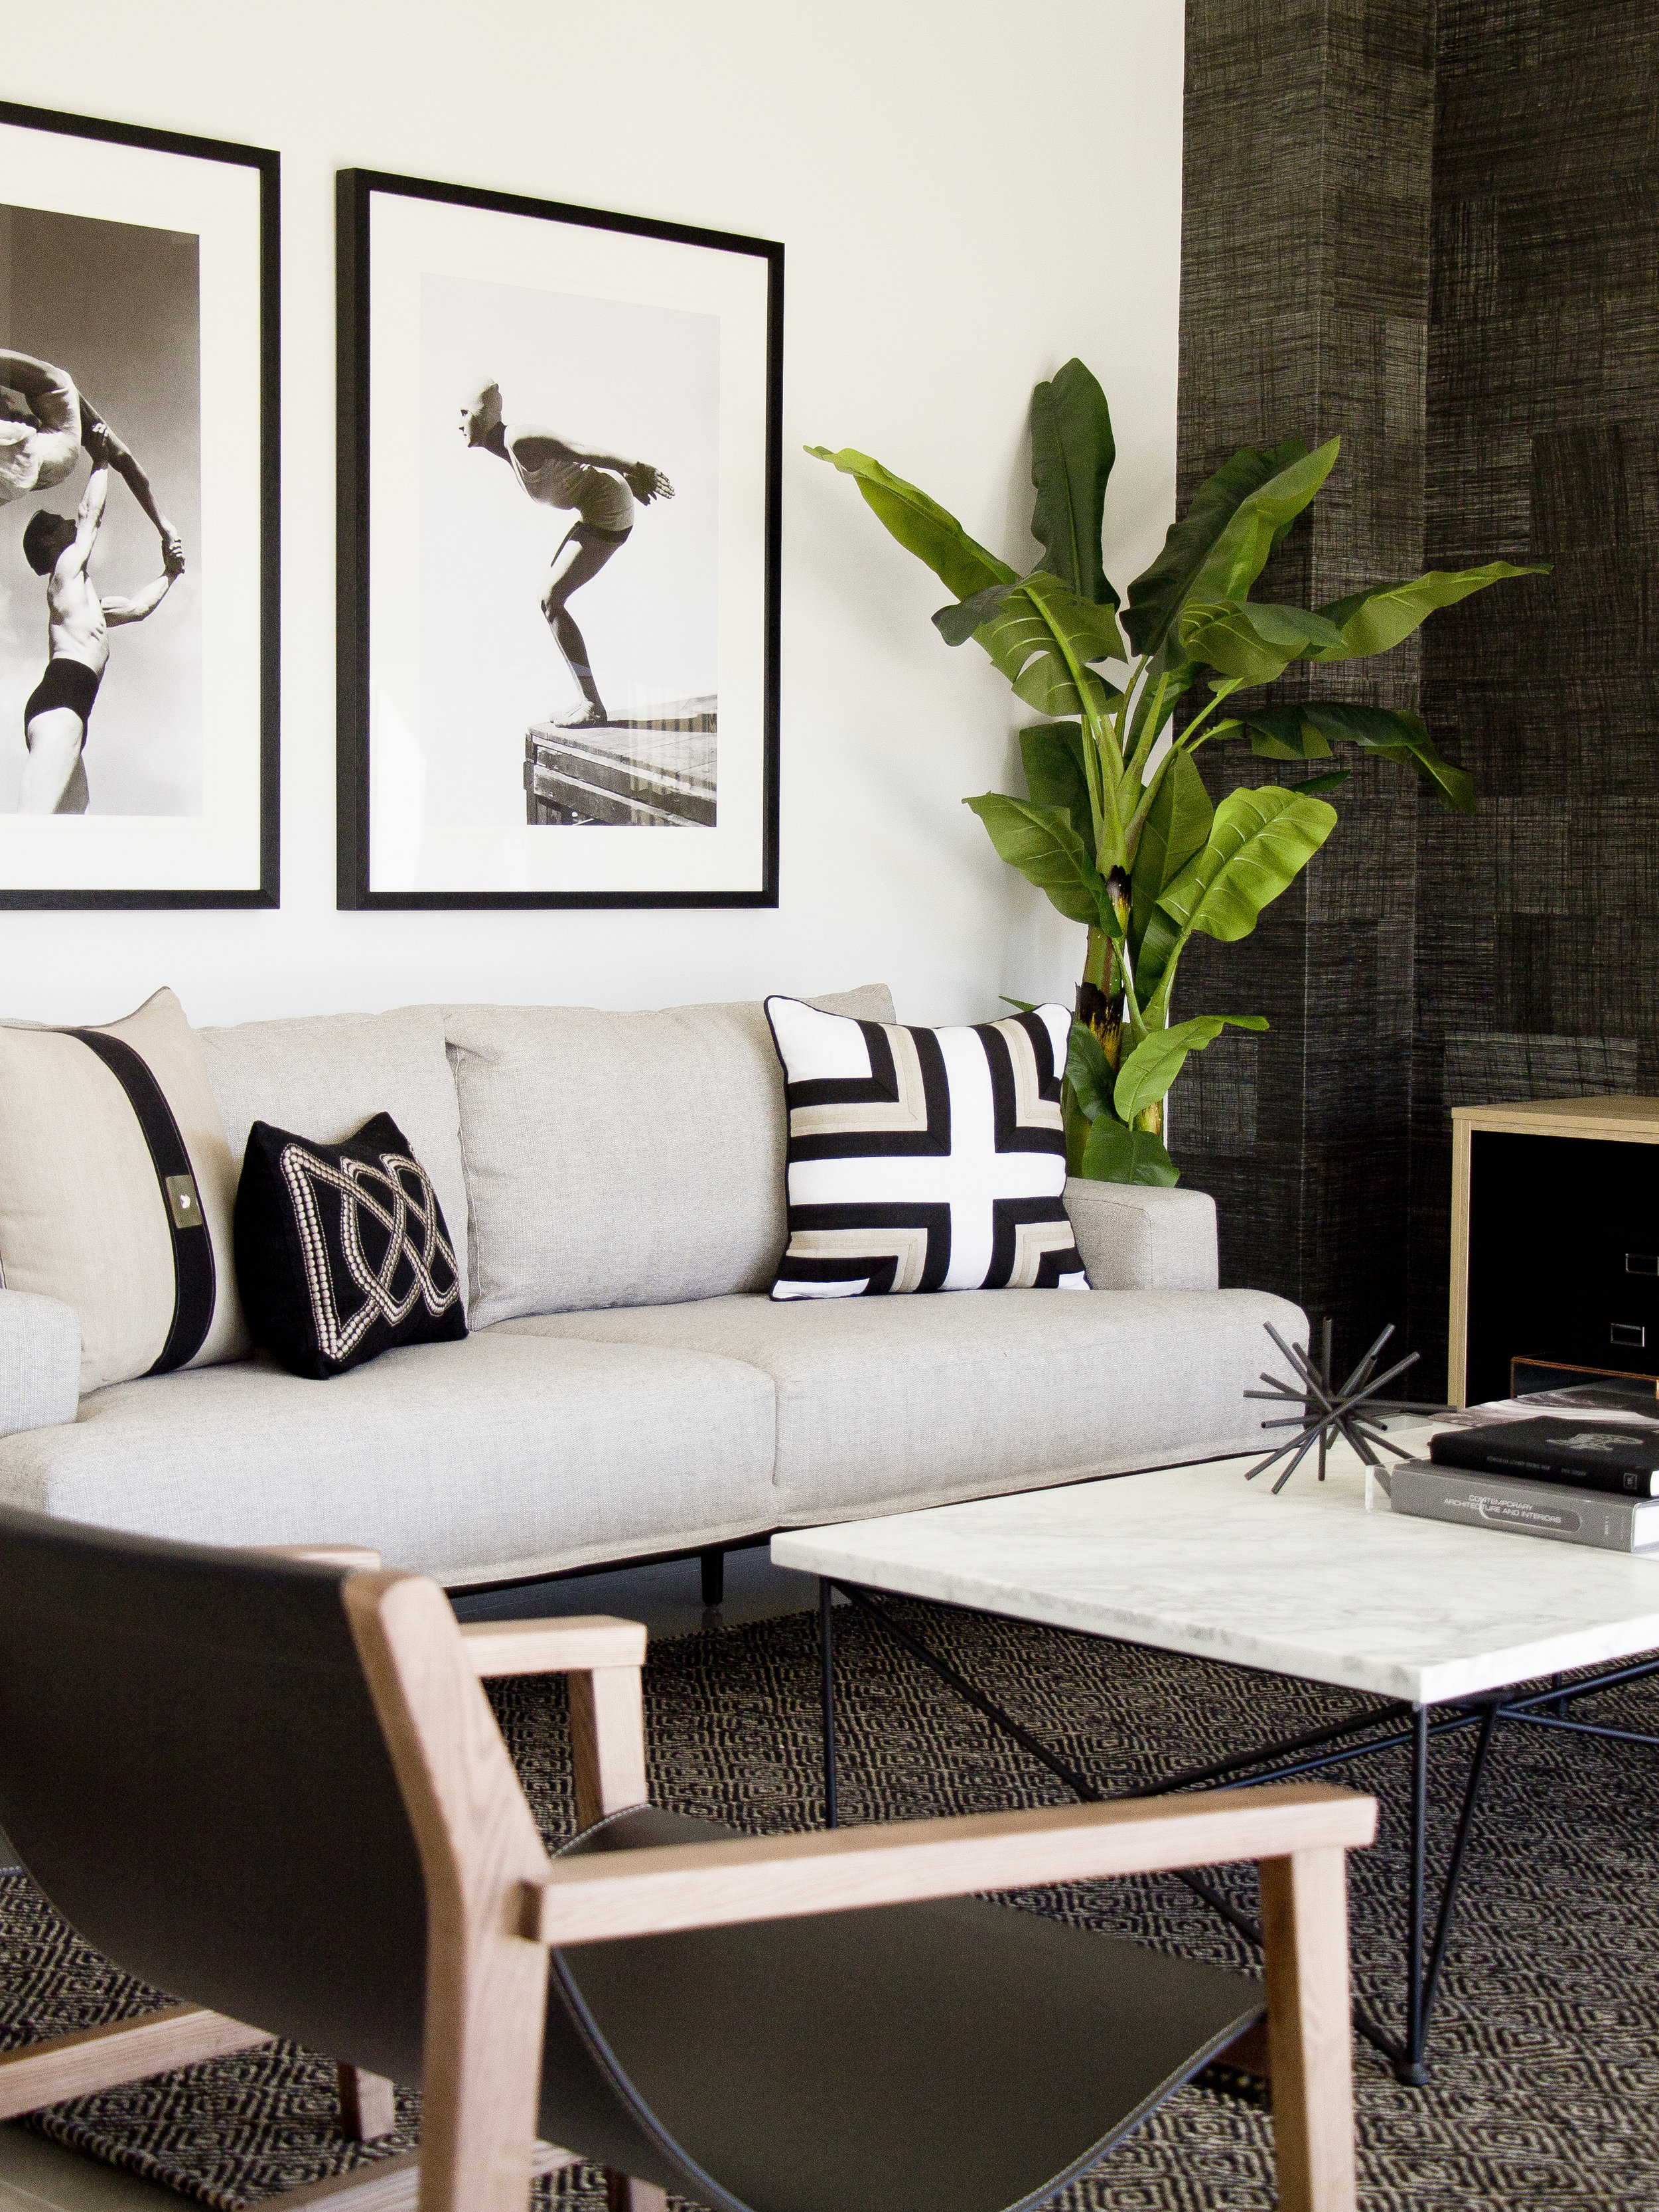 Design Scout - Interior Design - Jacinta Platt - Gold Coast Interior Designer - Photography by Tanika Blair - IMG_2851.jpg